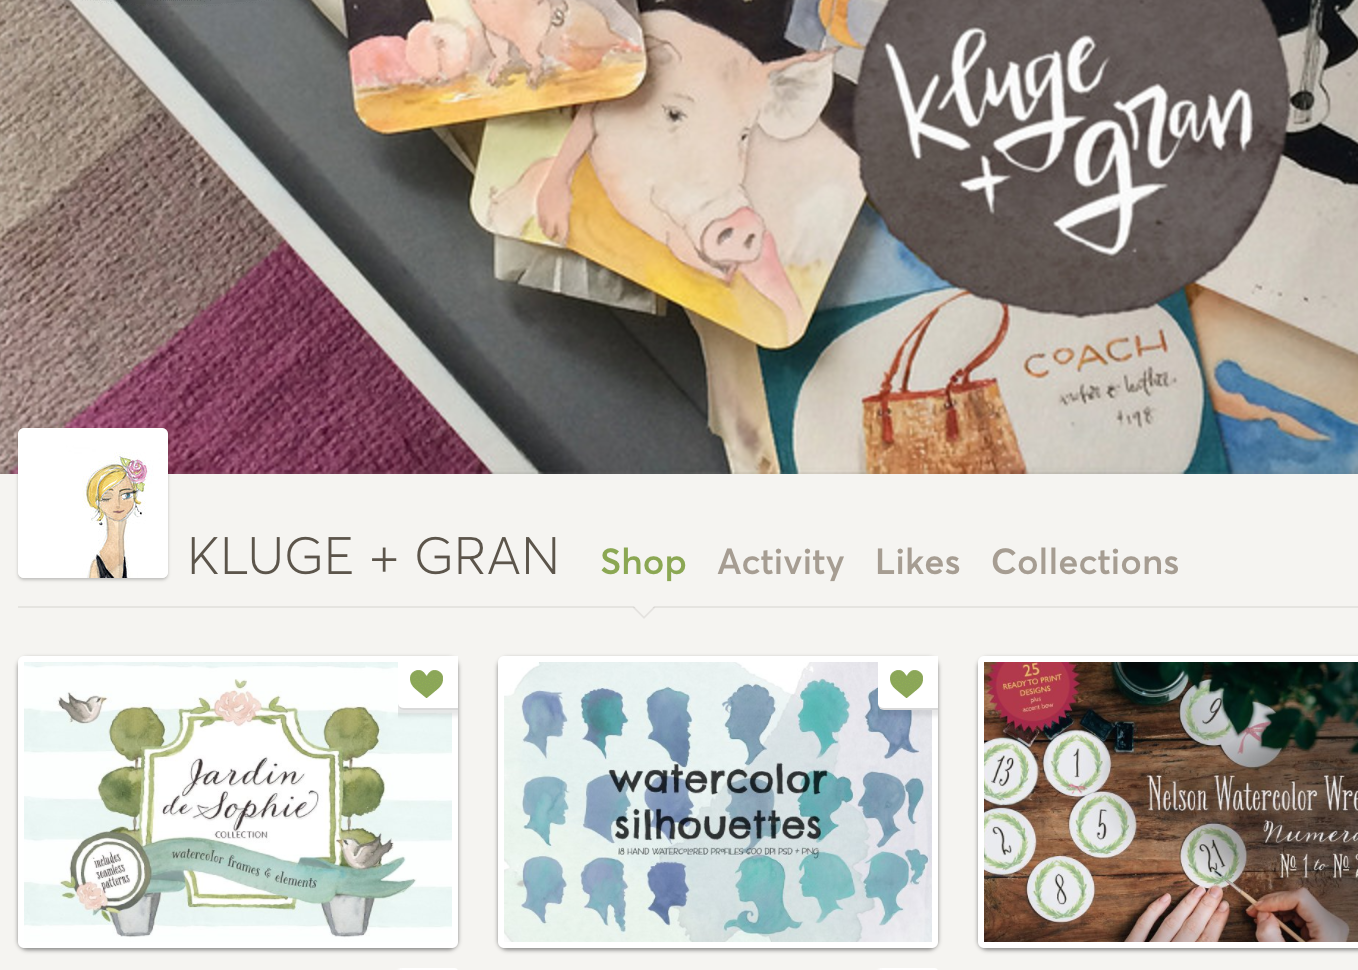 kluge & gran at creative market.png